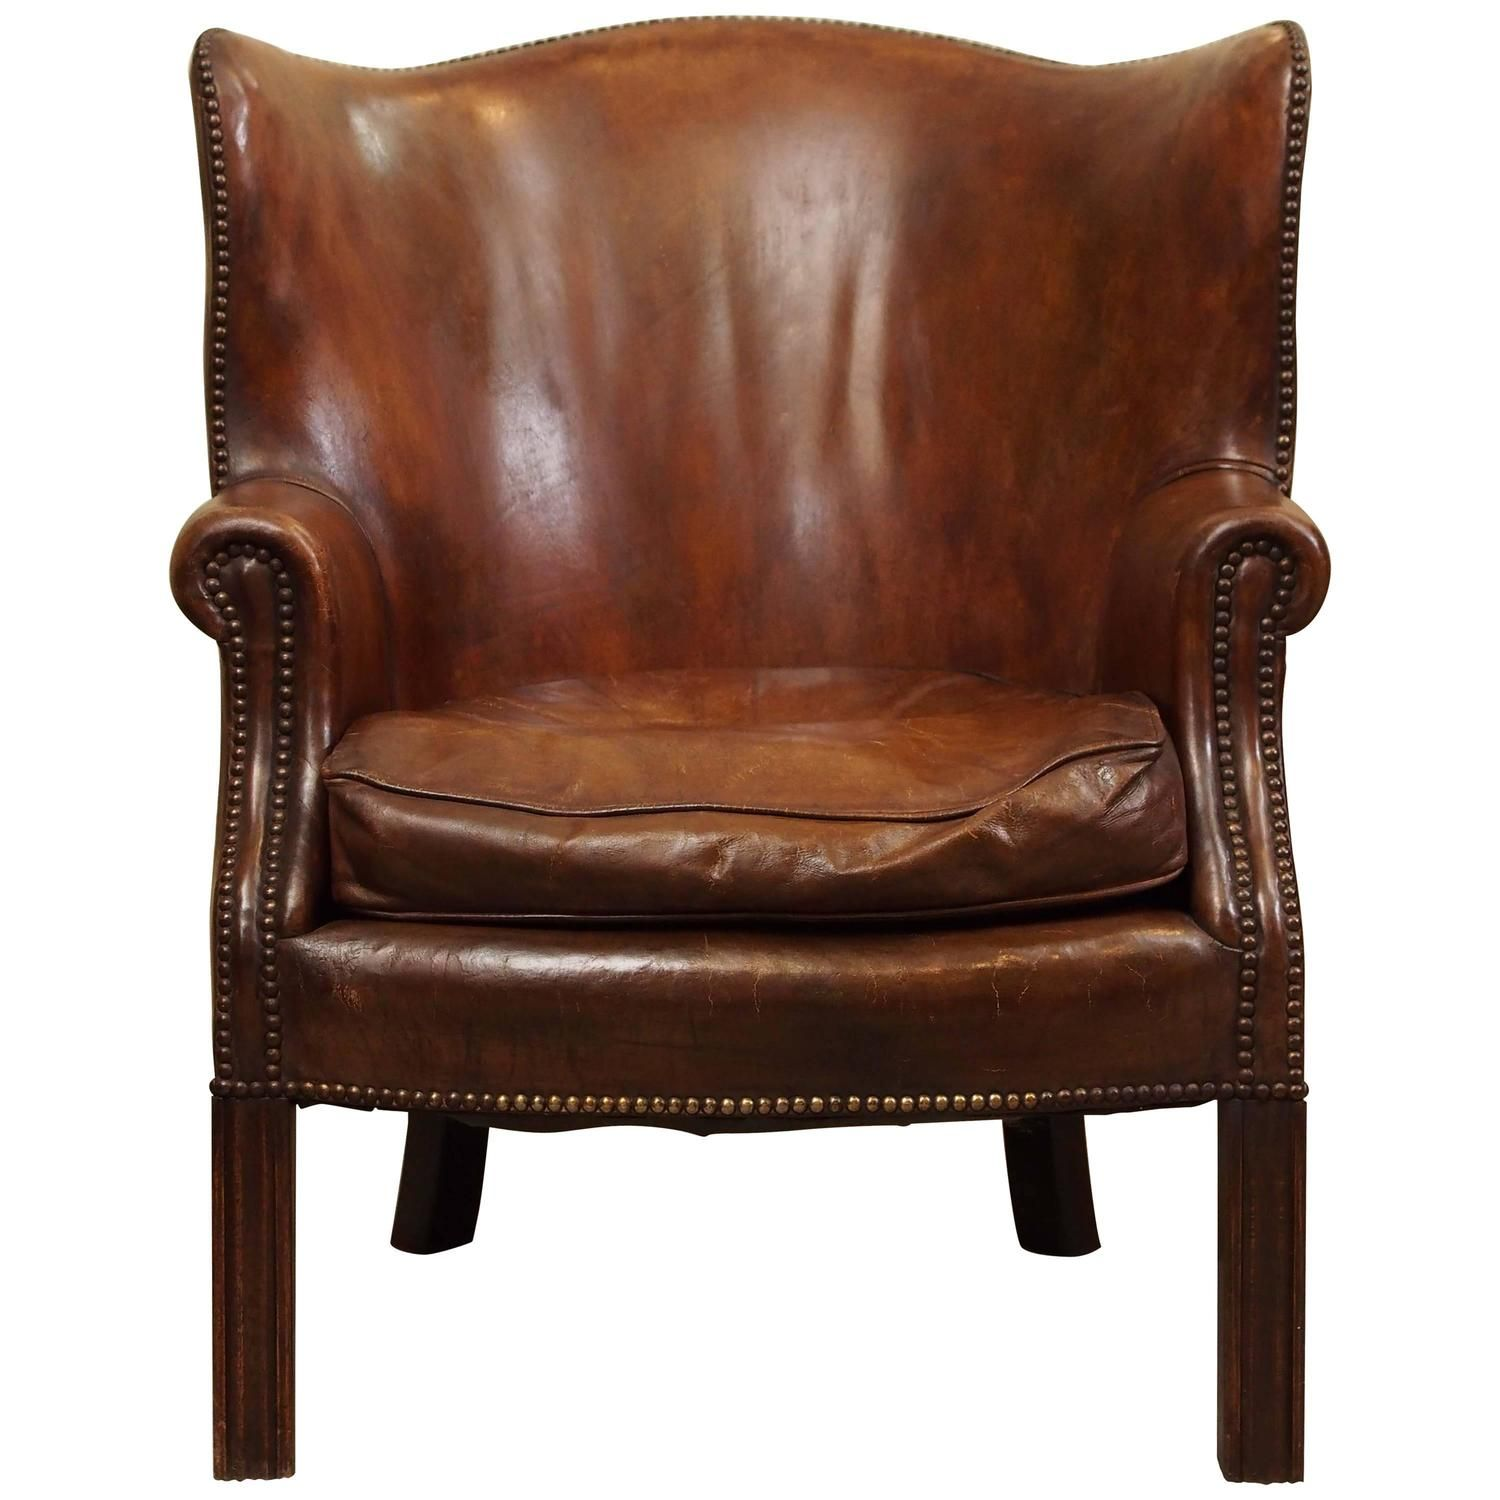 antique english mahogany leather library chair | english, modern